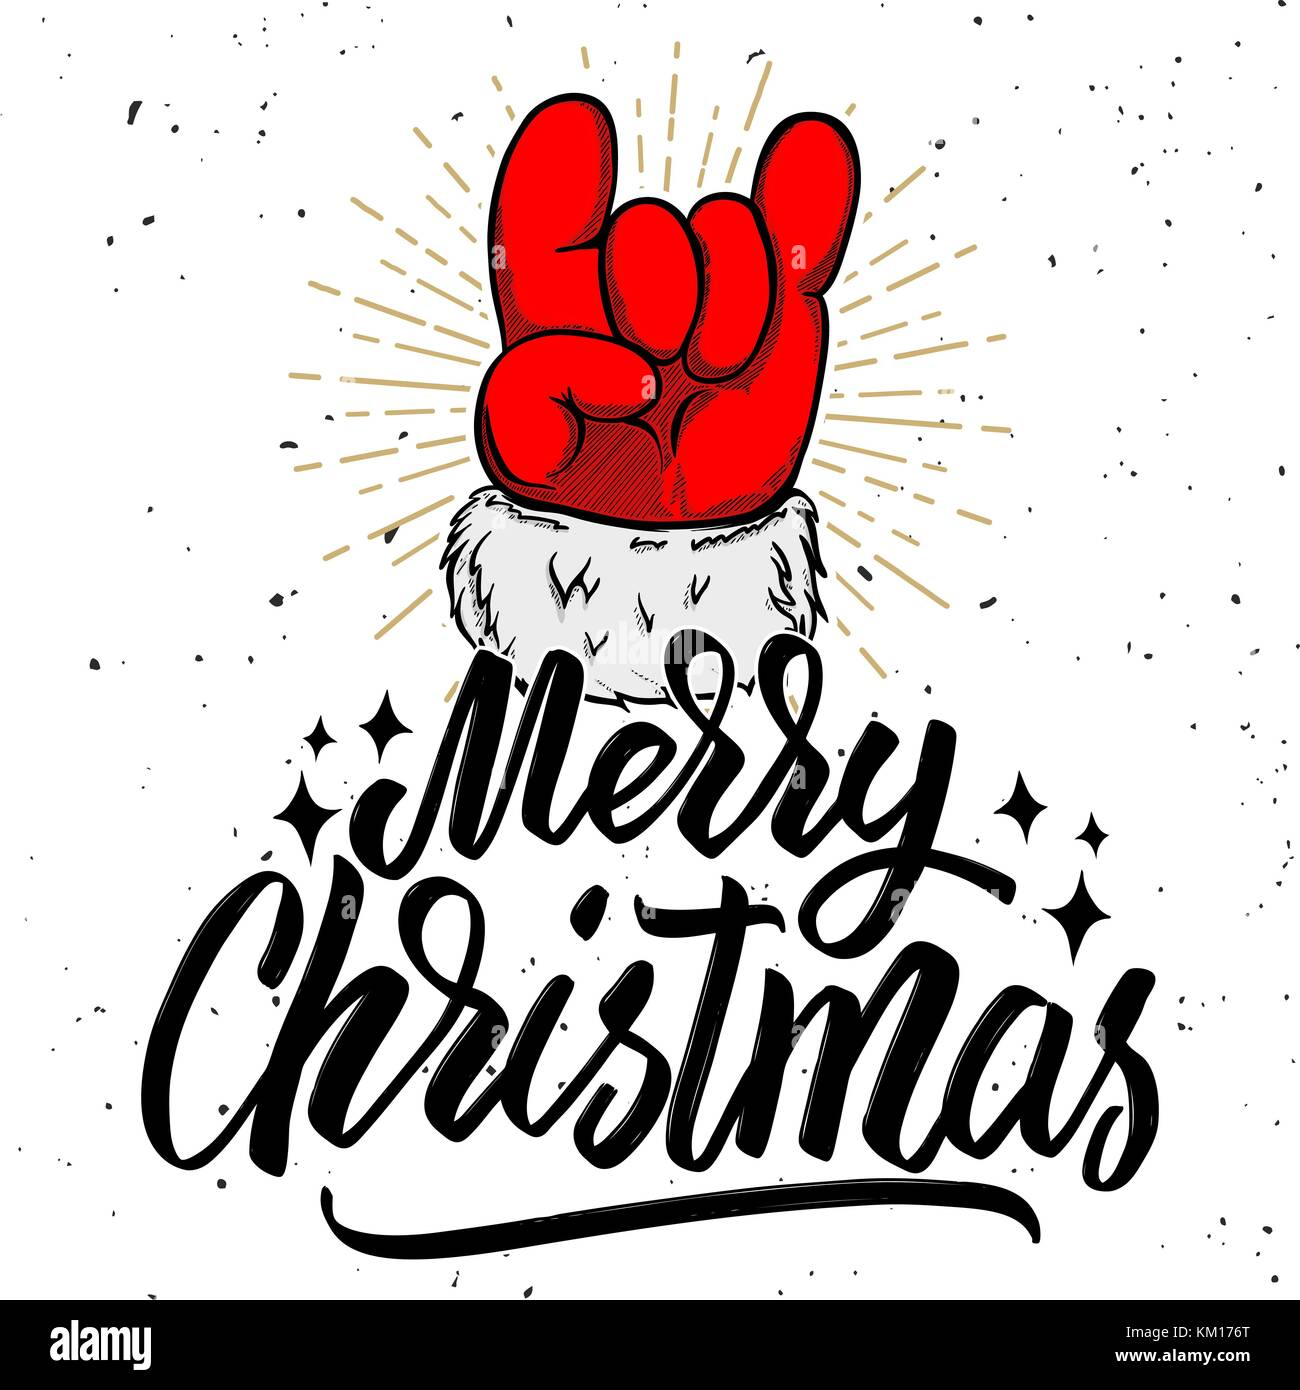 Christmas Rock.Merry Christmas Santa Claus Hand With Rock And Roll Sign